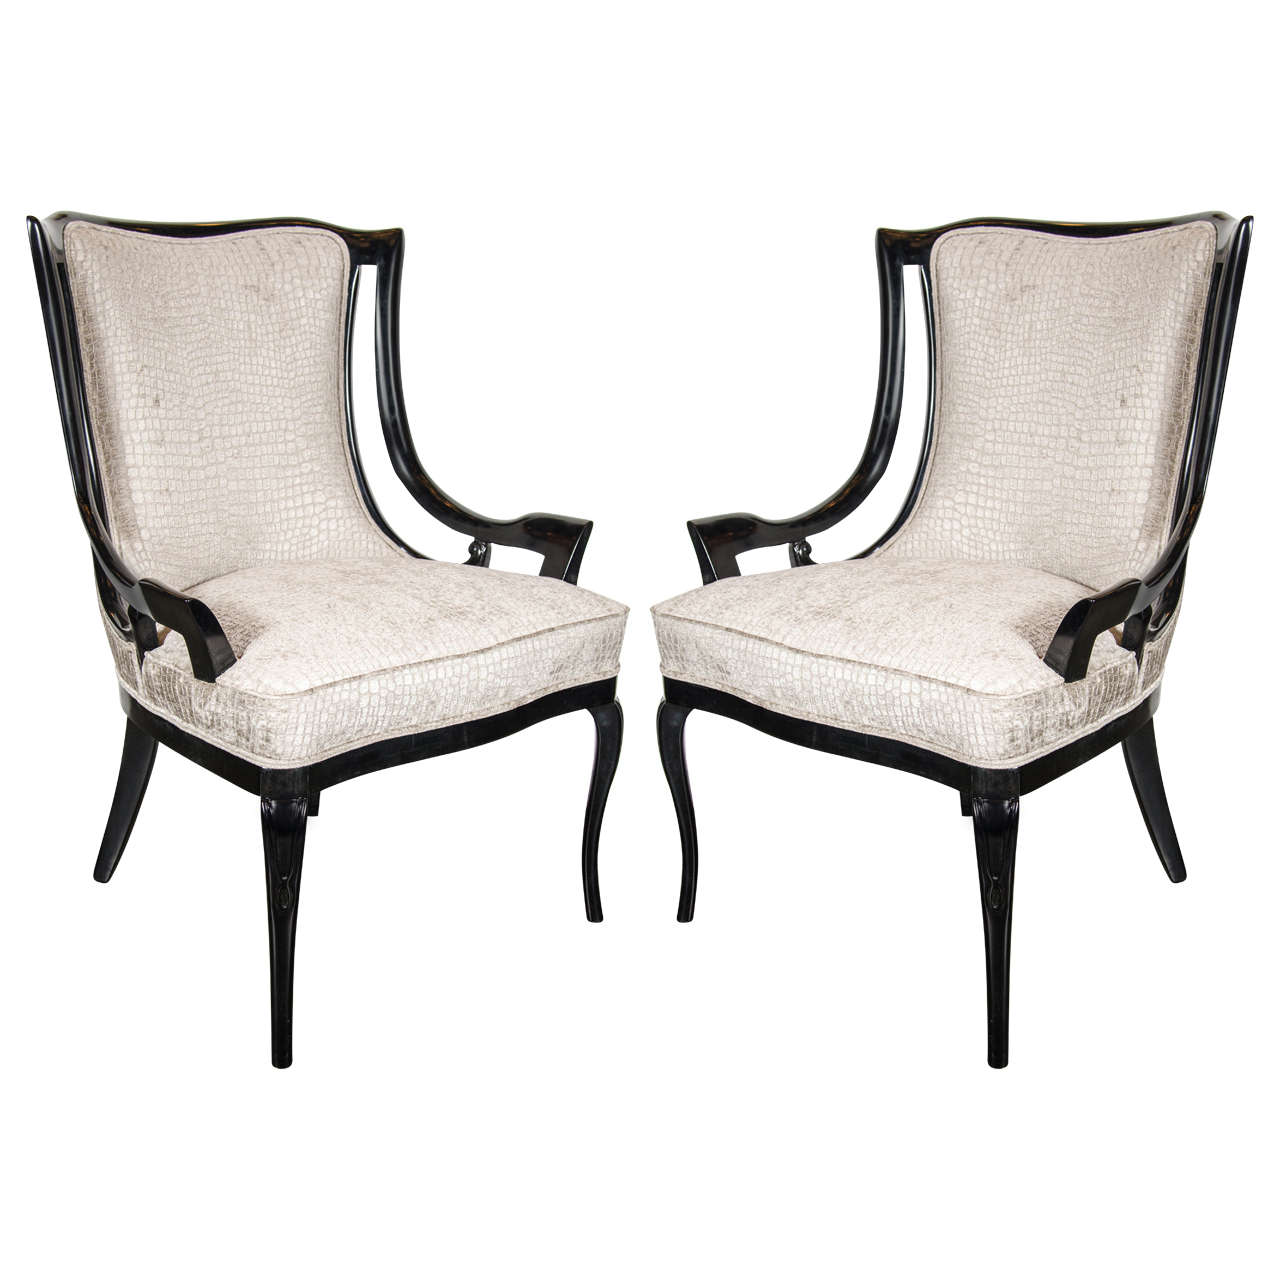 Sculptural Pair Of 1940s Sleigh Arm Occasional Chairs In Oyster Croc Velvet For